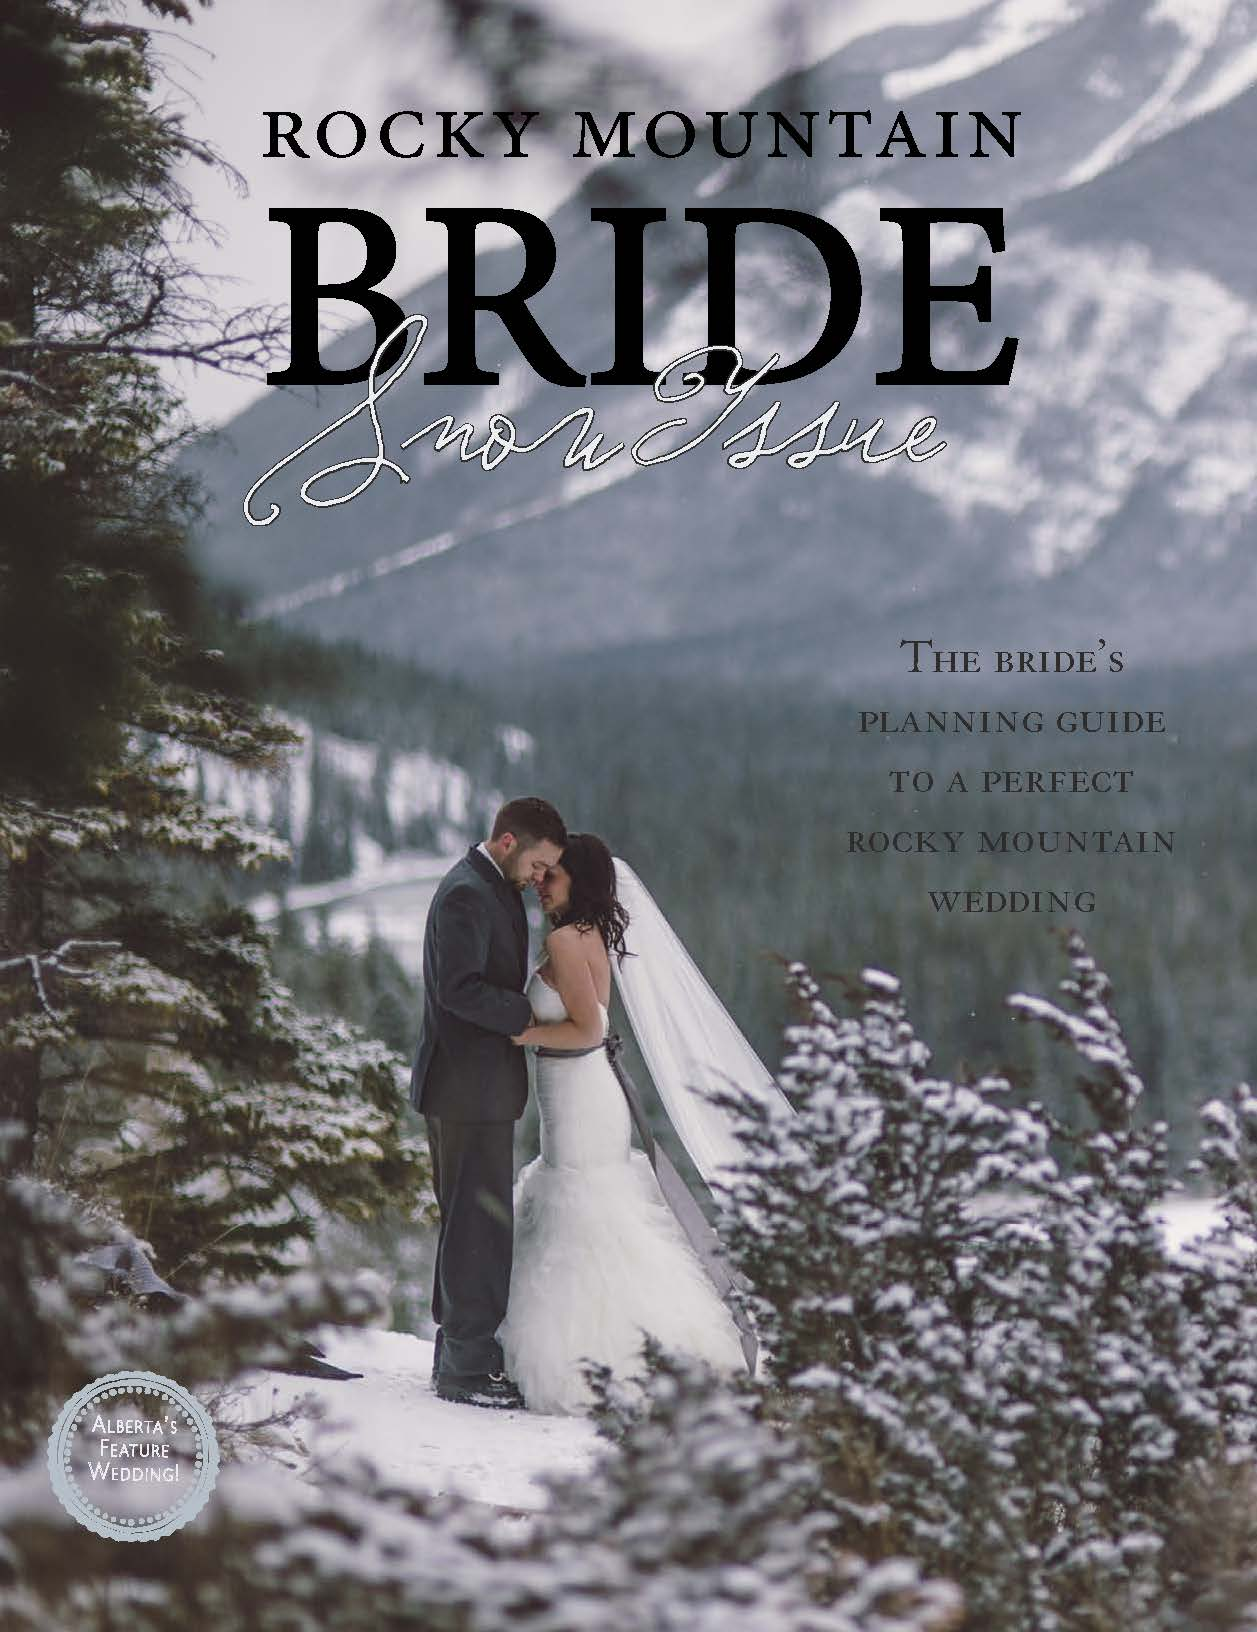 rocky-mountain-bride-coco-and-ash-feature-2014